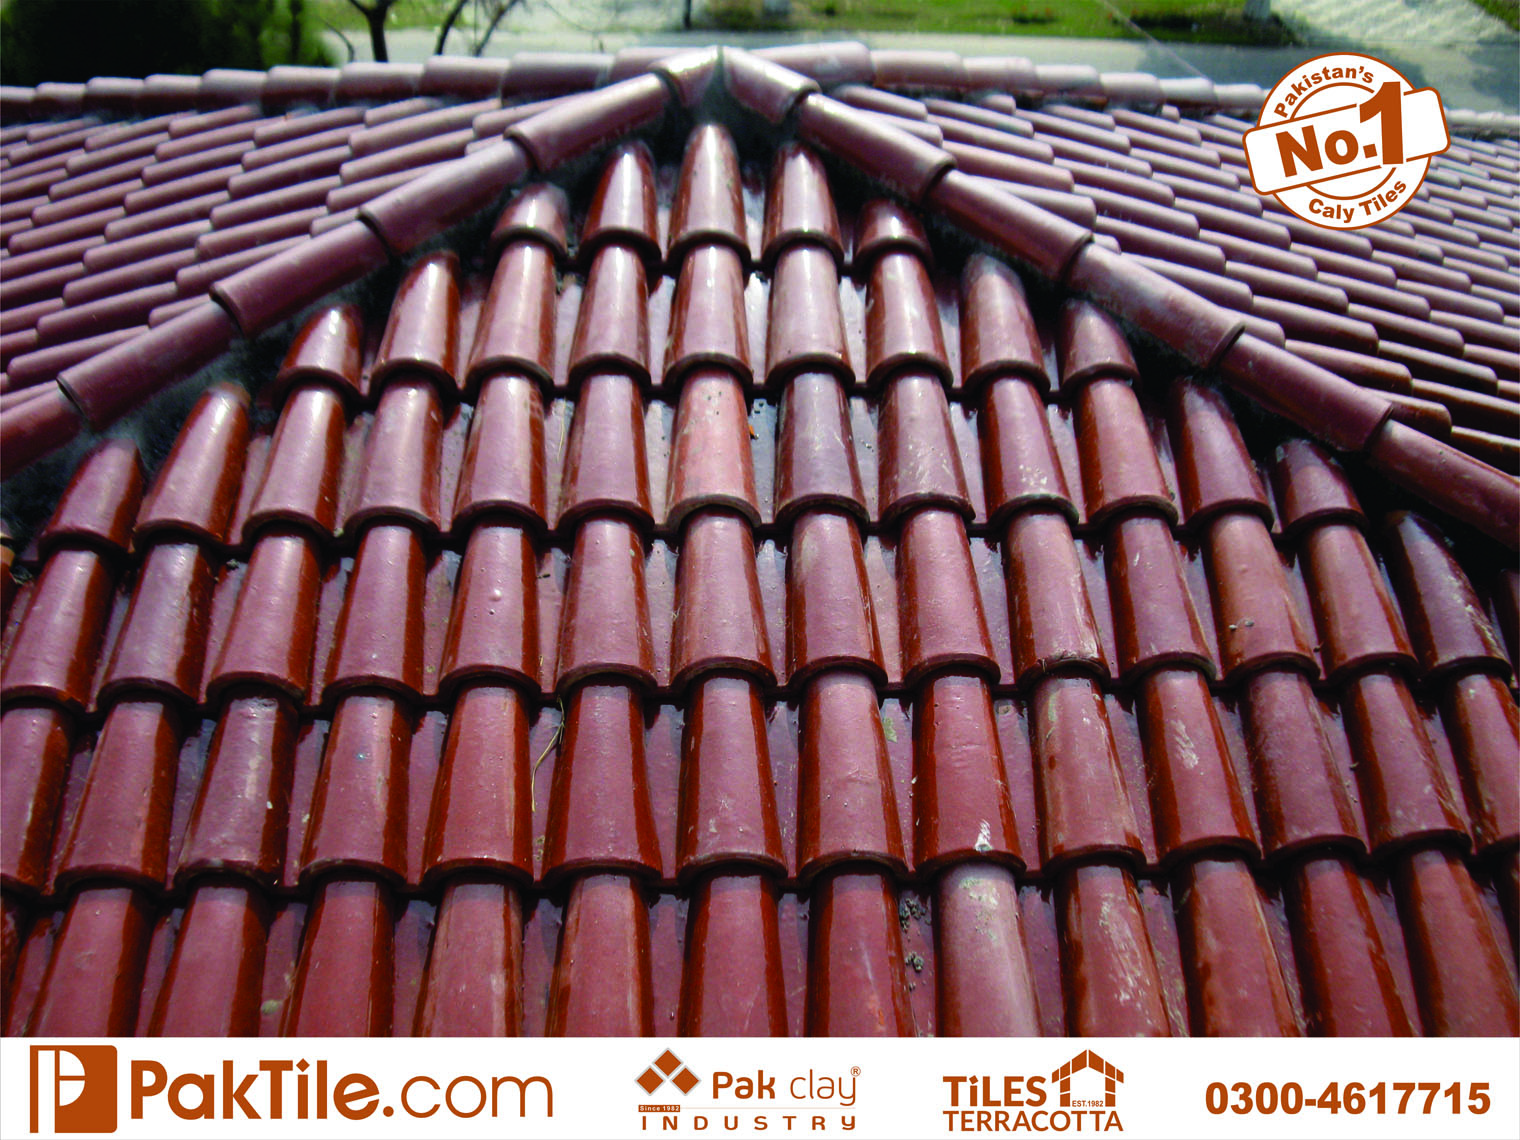 Spanish Clay Roof Tiles 11 Pak Clay Tiles